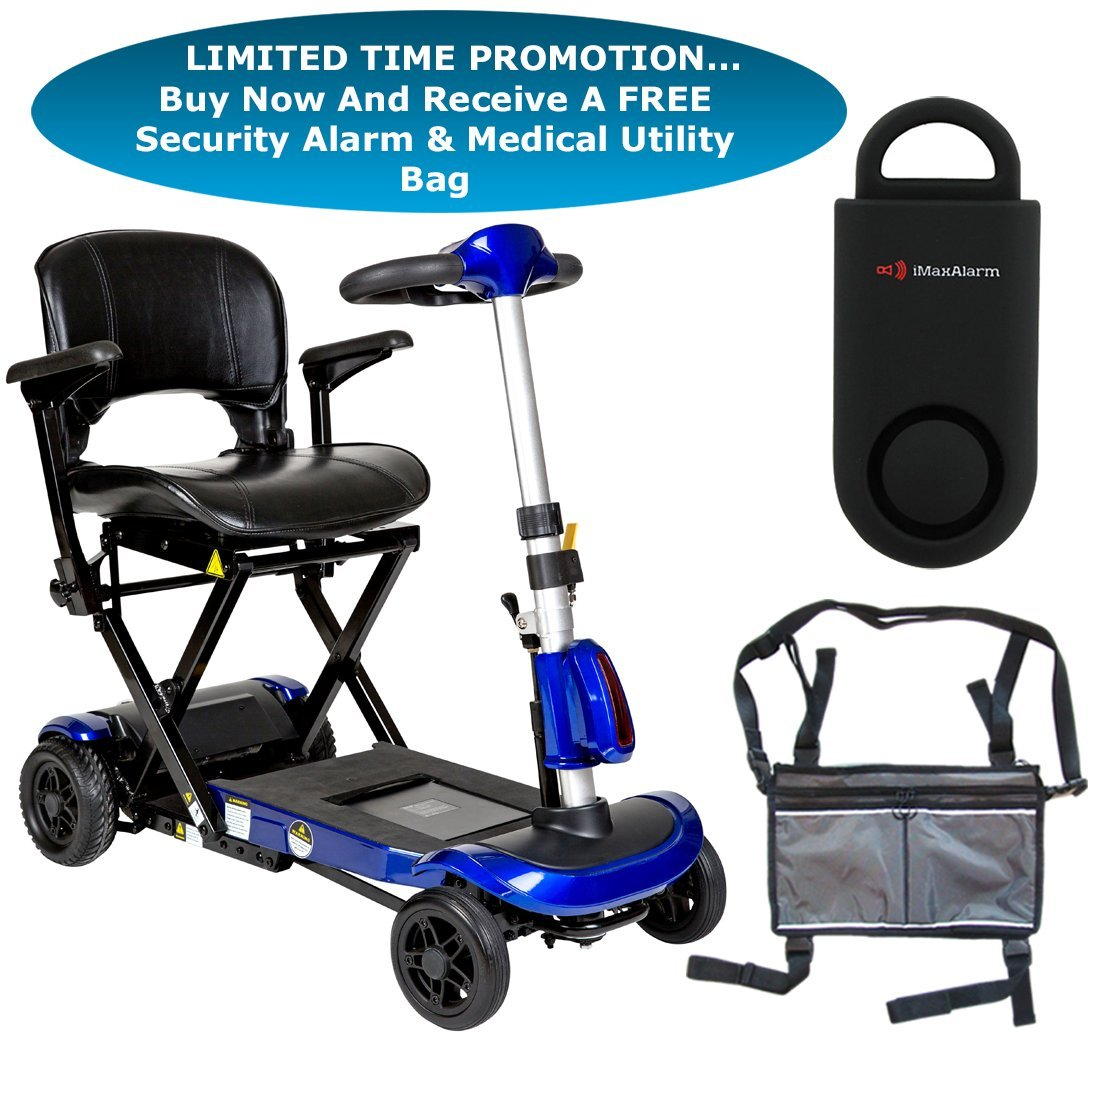 Drive ZooMe Auto-Flex Folding Travel Scooter, Blue & FREE 130 dB Black Personal Safety Alarm/Siren! + Silver Medical Utility Bag!